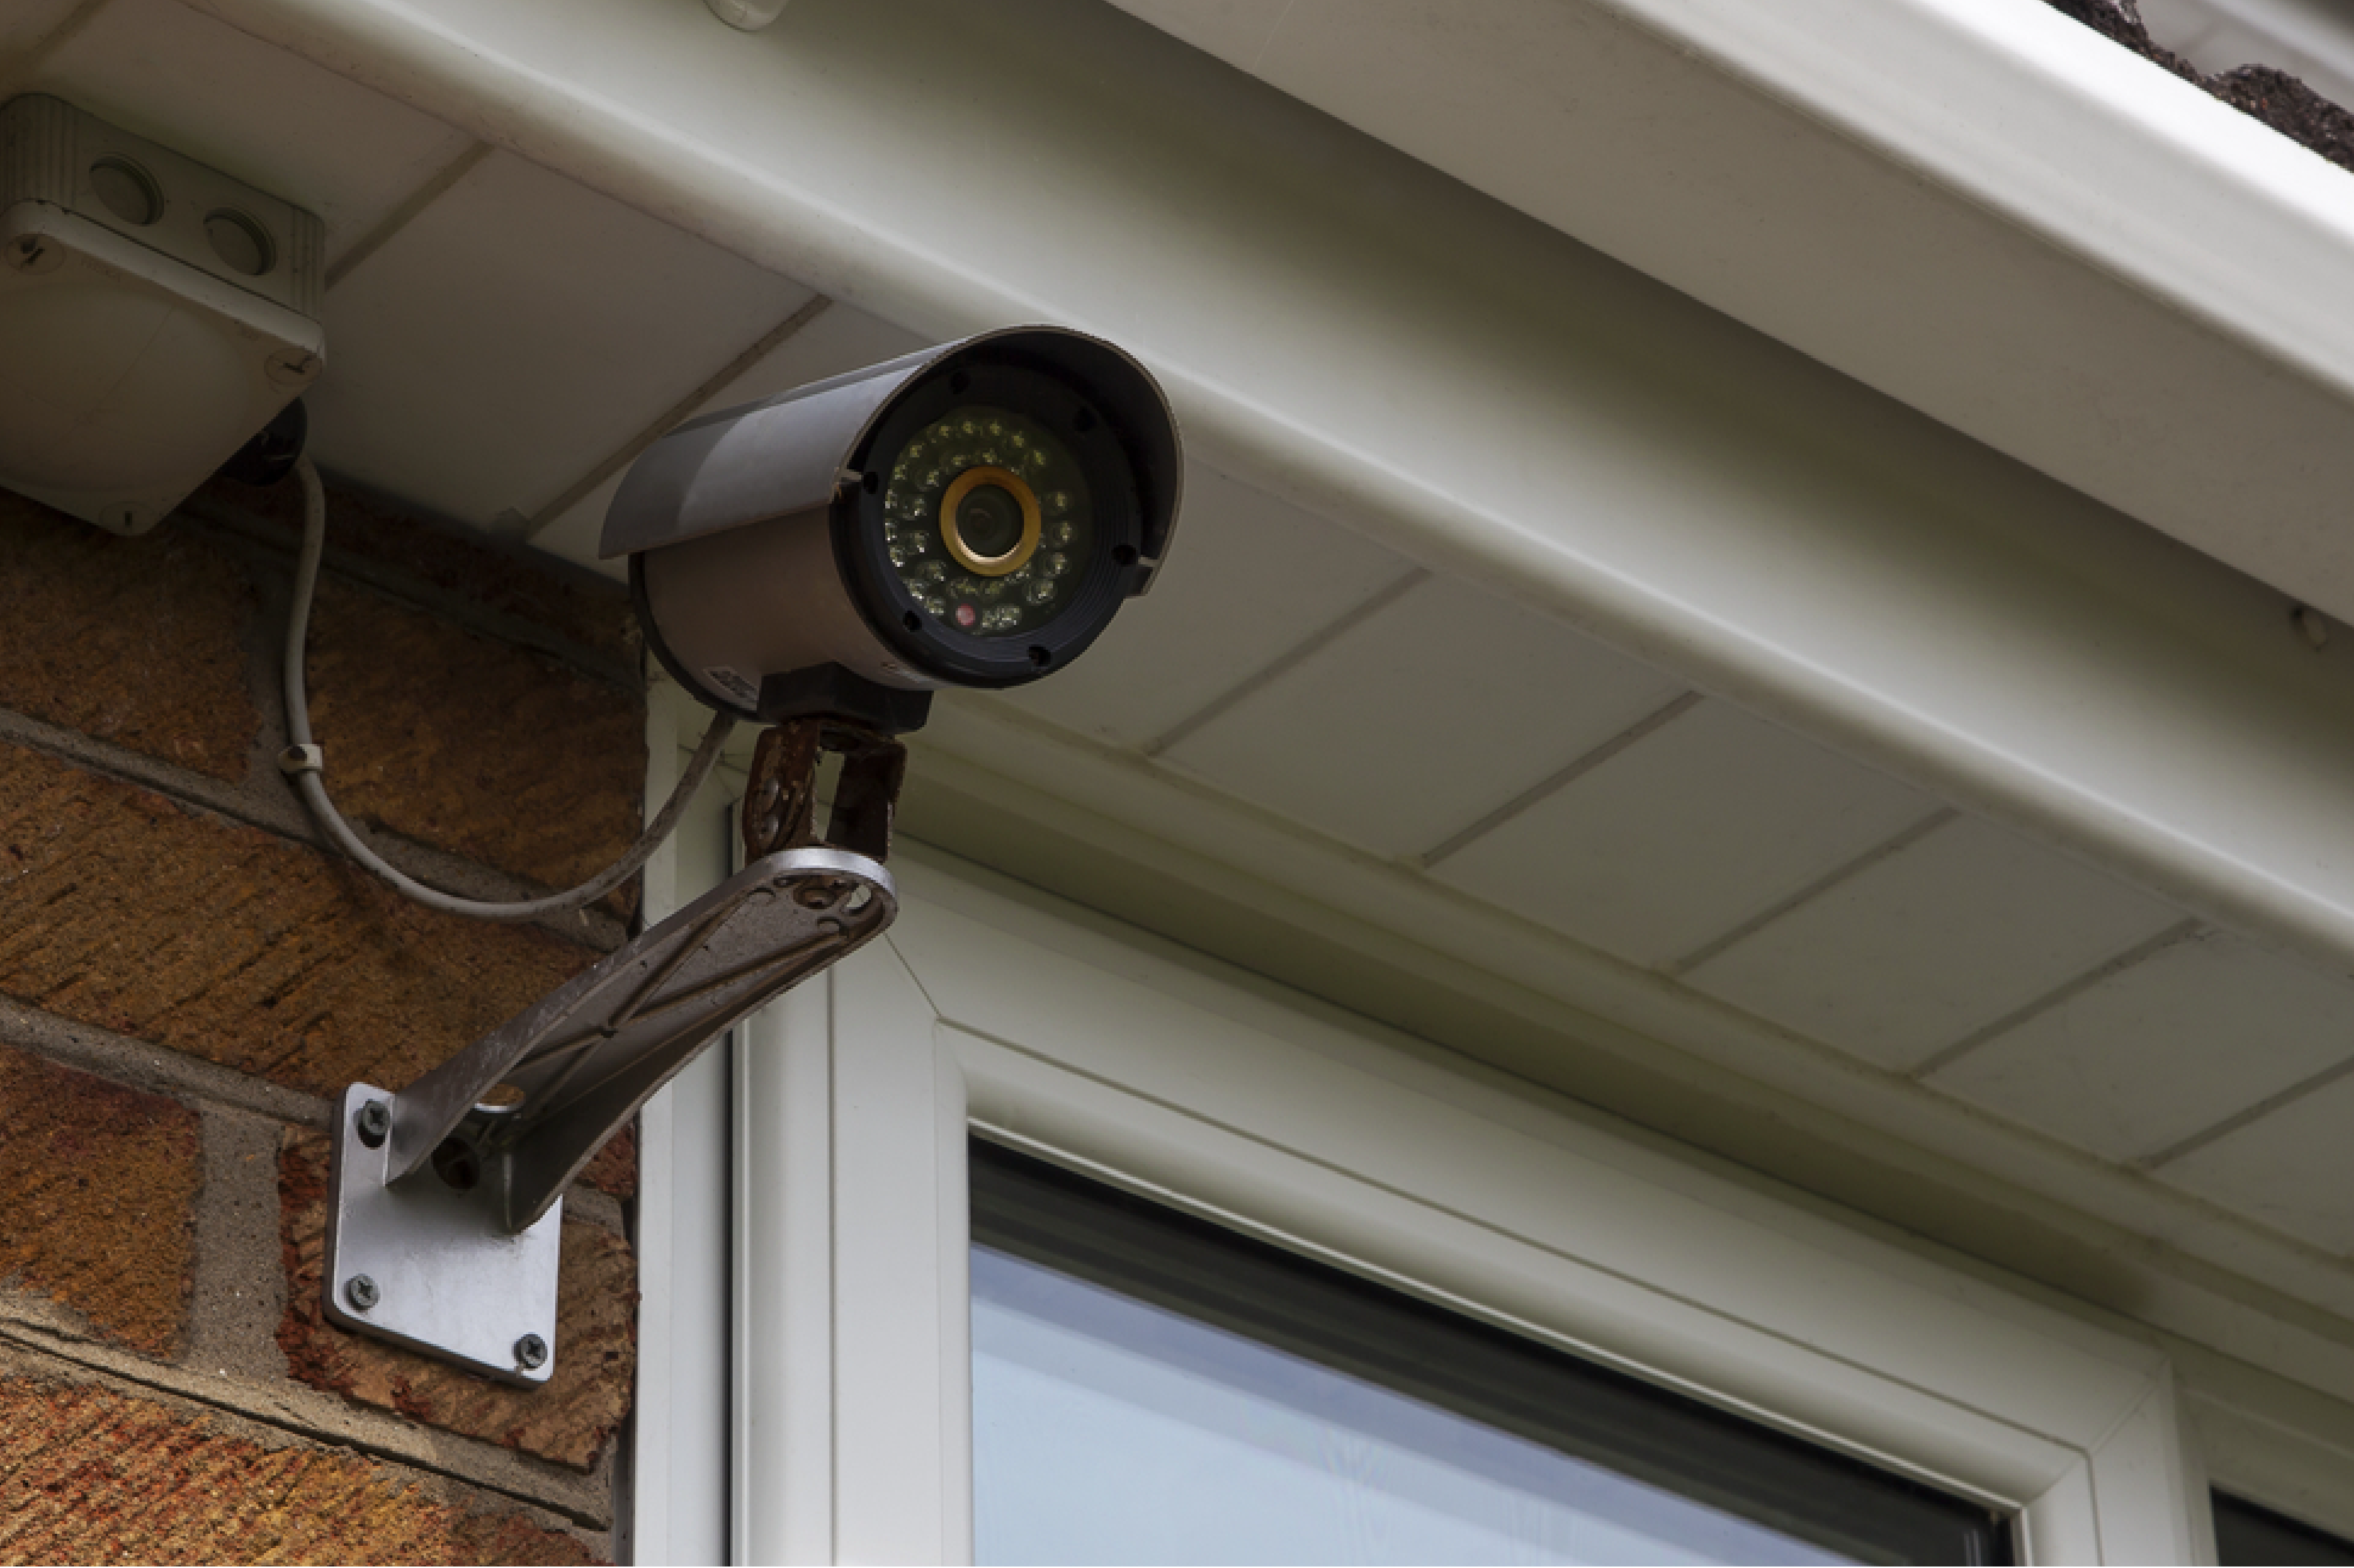 Home security specialists